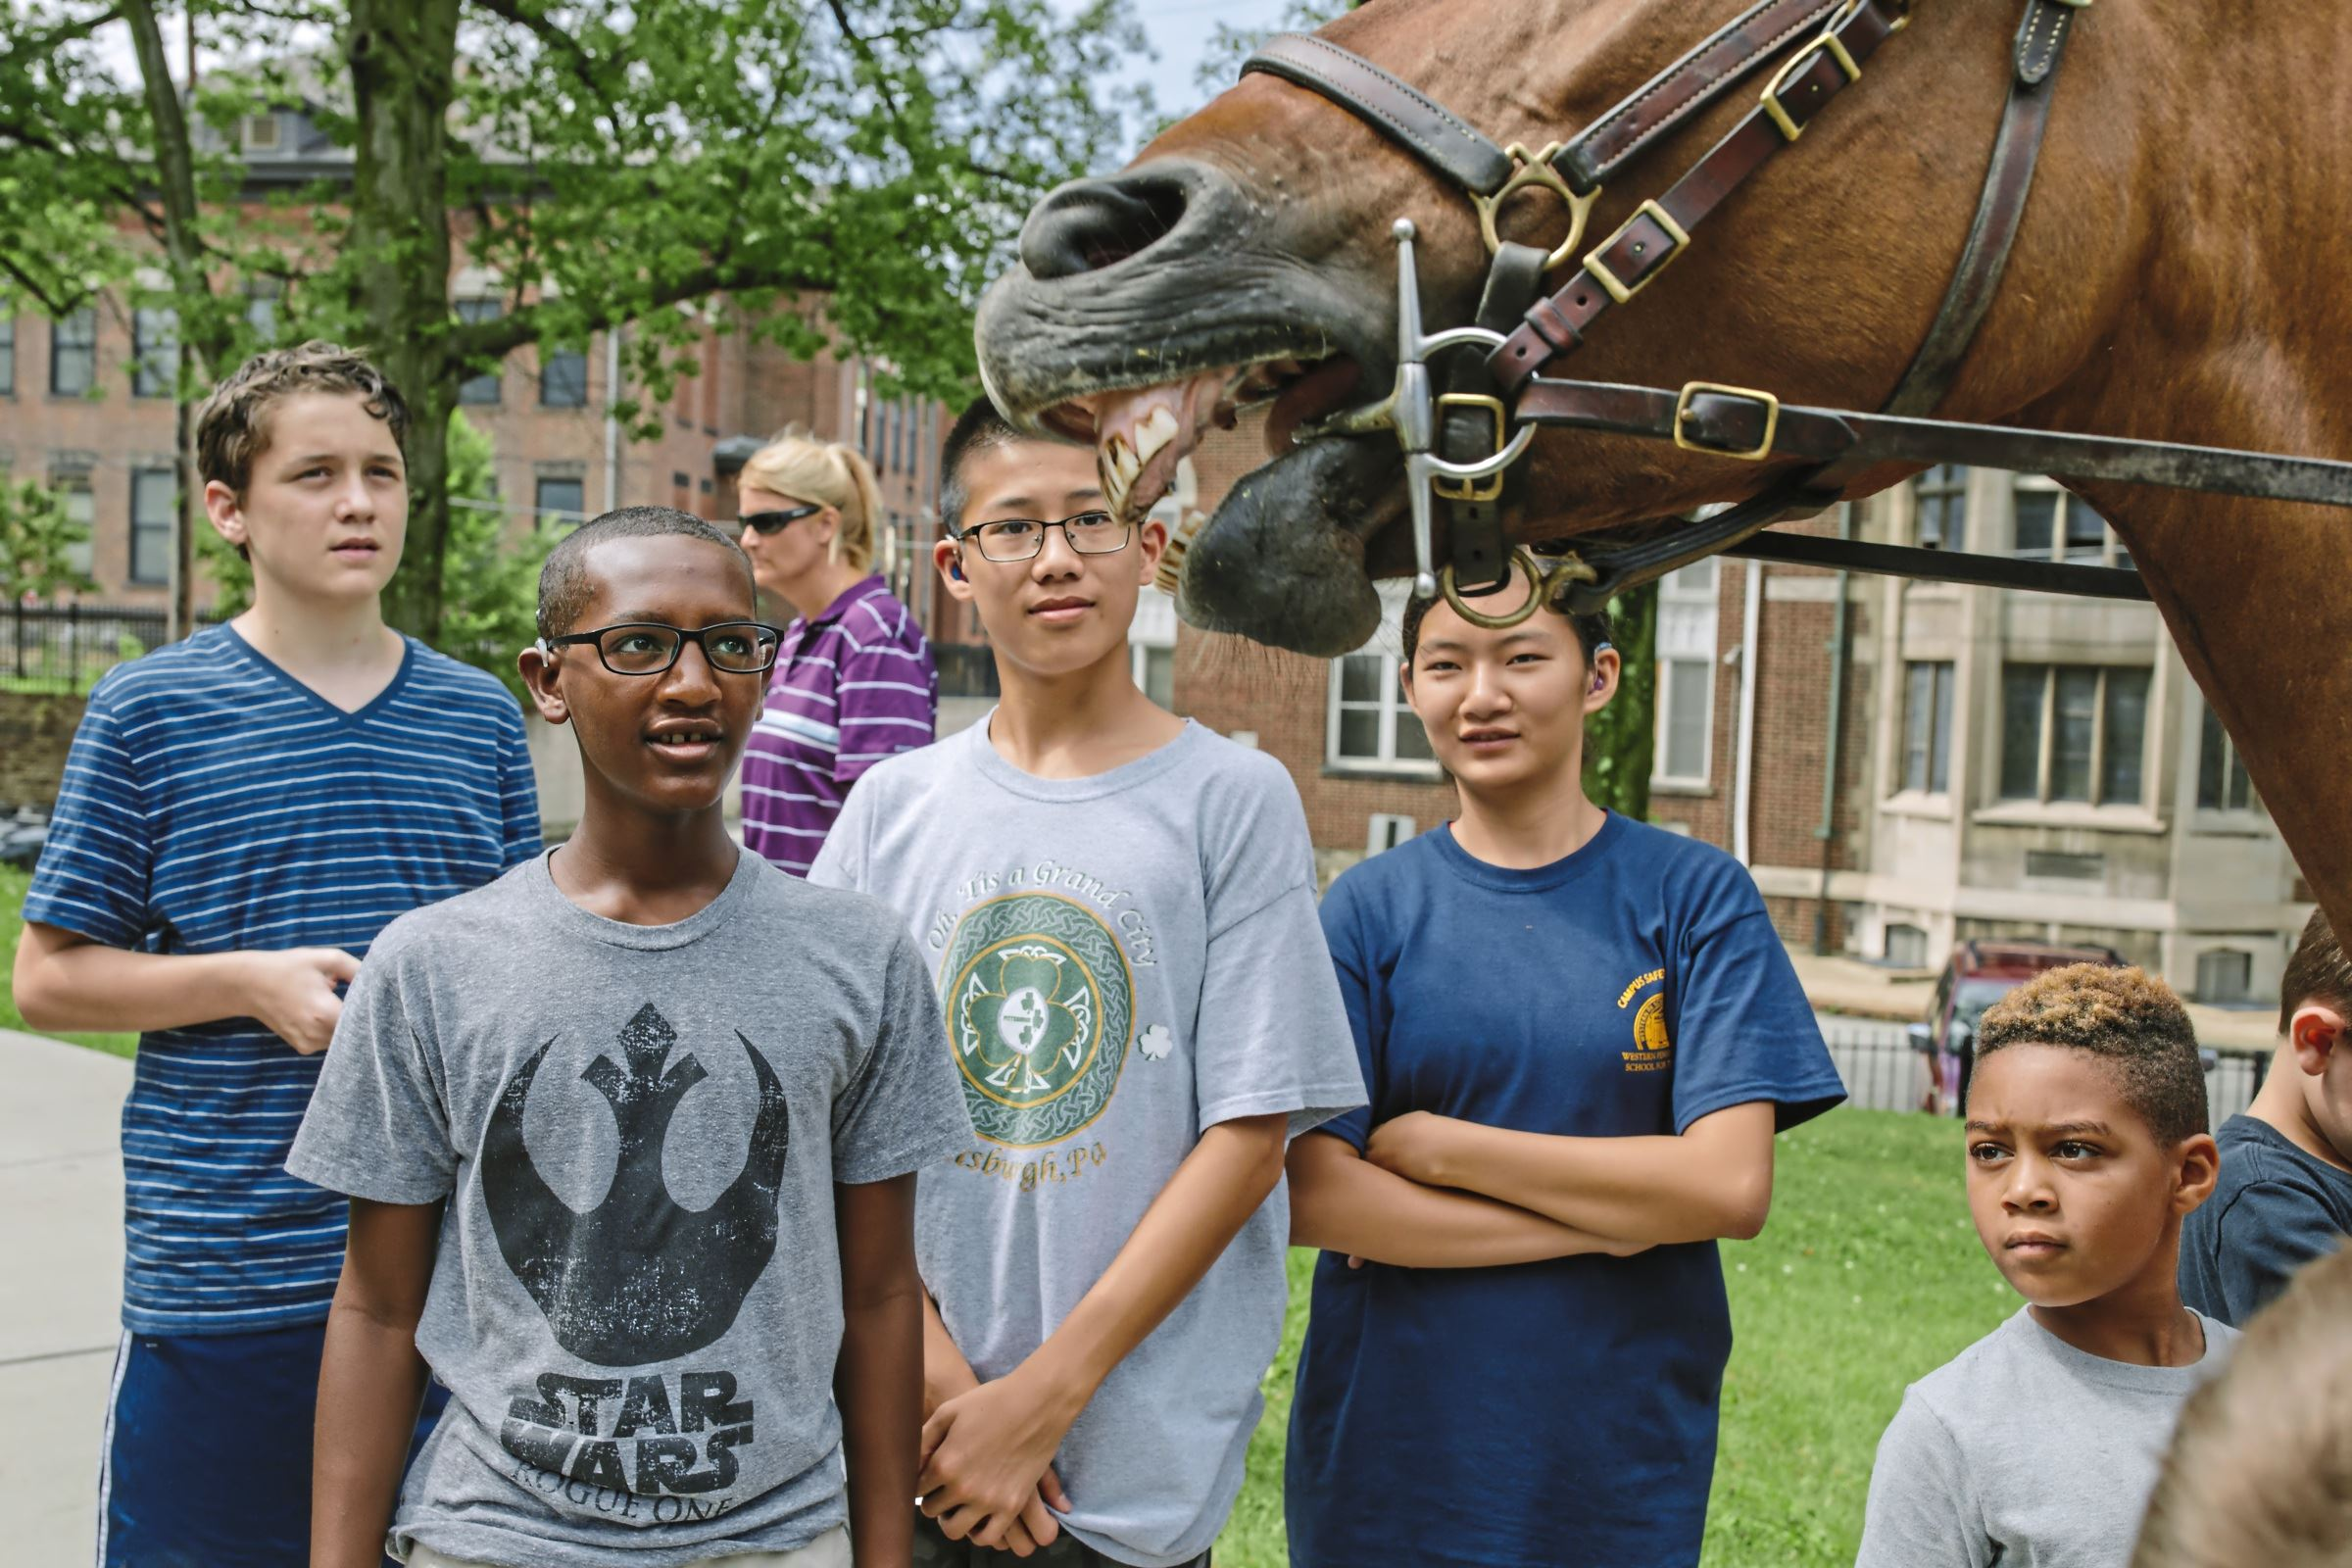 20170711arHorseAcademy01 Sam Adams, left, Gebreabzgi Helmstadter, Wade Dunbar, Bella Dunbar and David Hughes meet Milo, an Allegheny County Police horse, during the Western Pennsylvania School for the Deaf's Junior Police Academy in Edgewood. During the weeklong academy, law enforcement agencies make presentations to middle school students from WPSD and the surrounding communities.